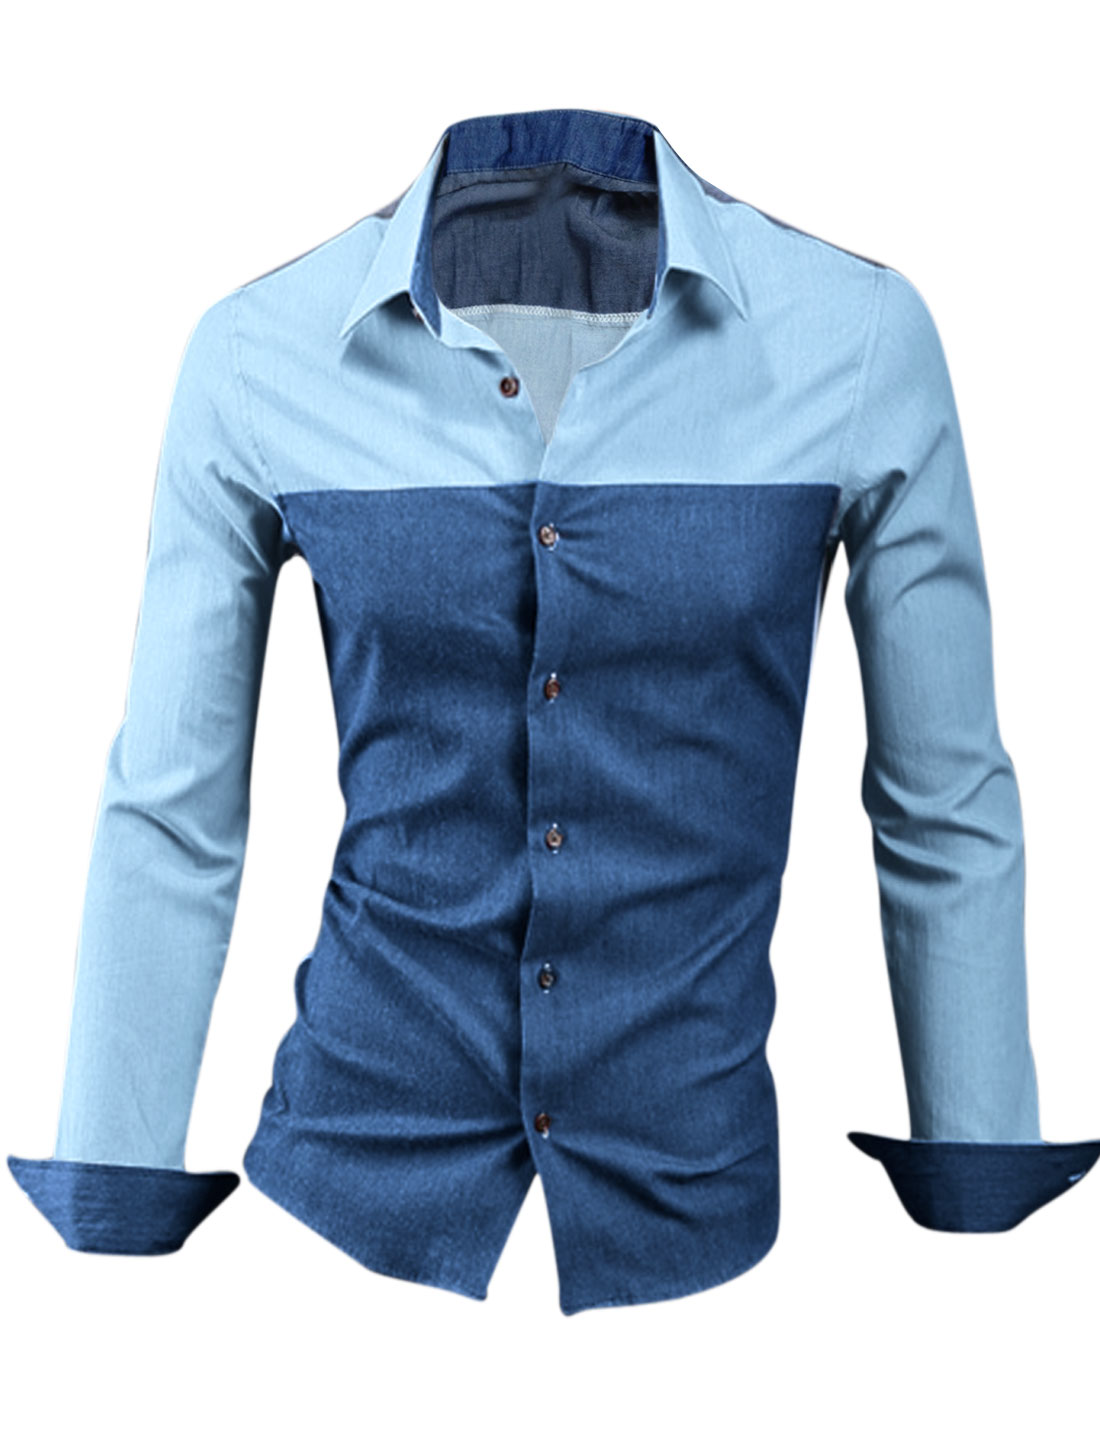 Men Buttons Cuffs Splicing Two Tone Stylish Top Shirt Navy Blue M